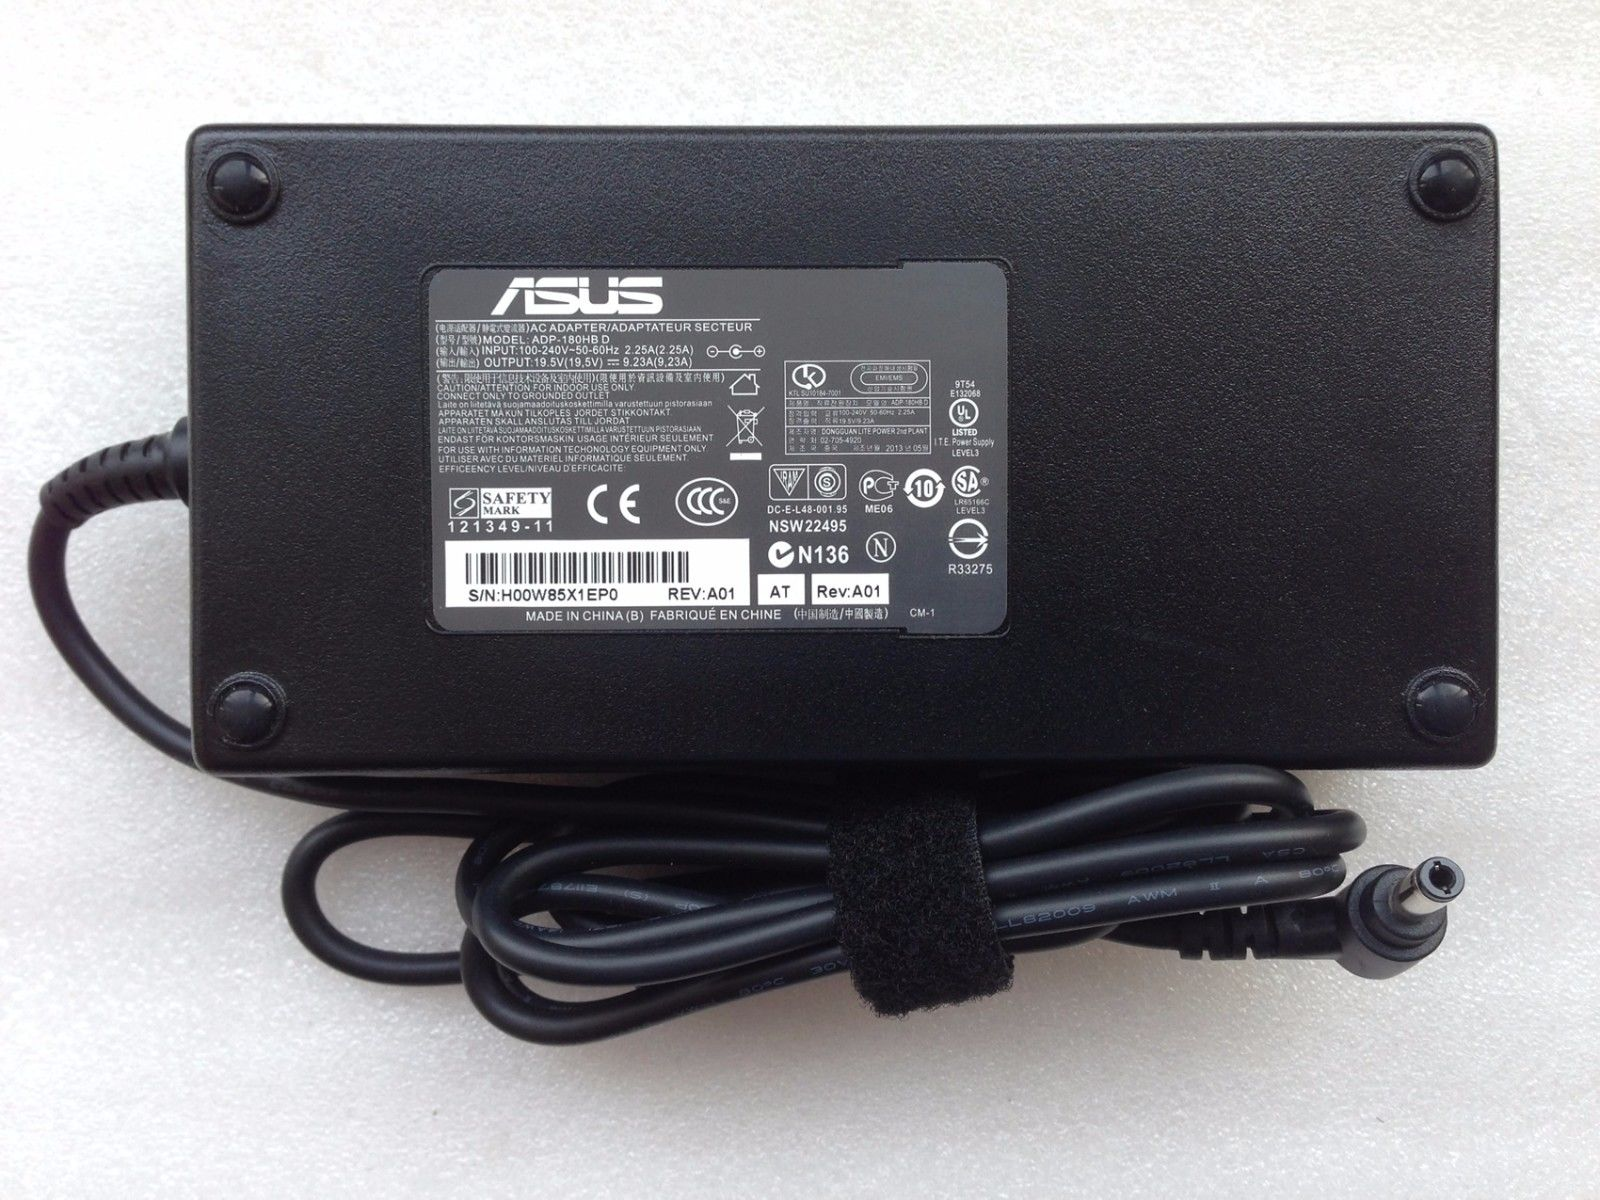 180W 19.5V ASUS ADP-120RH Chargeurs